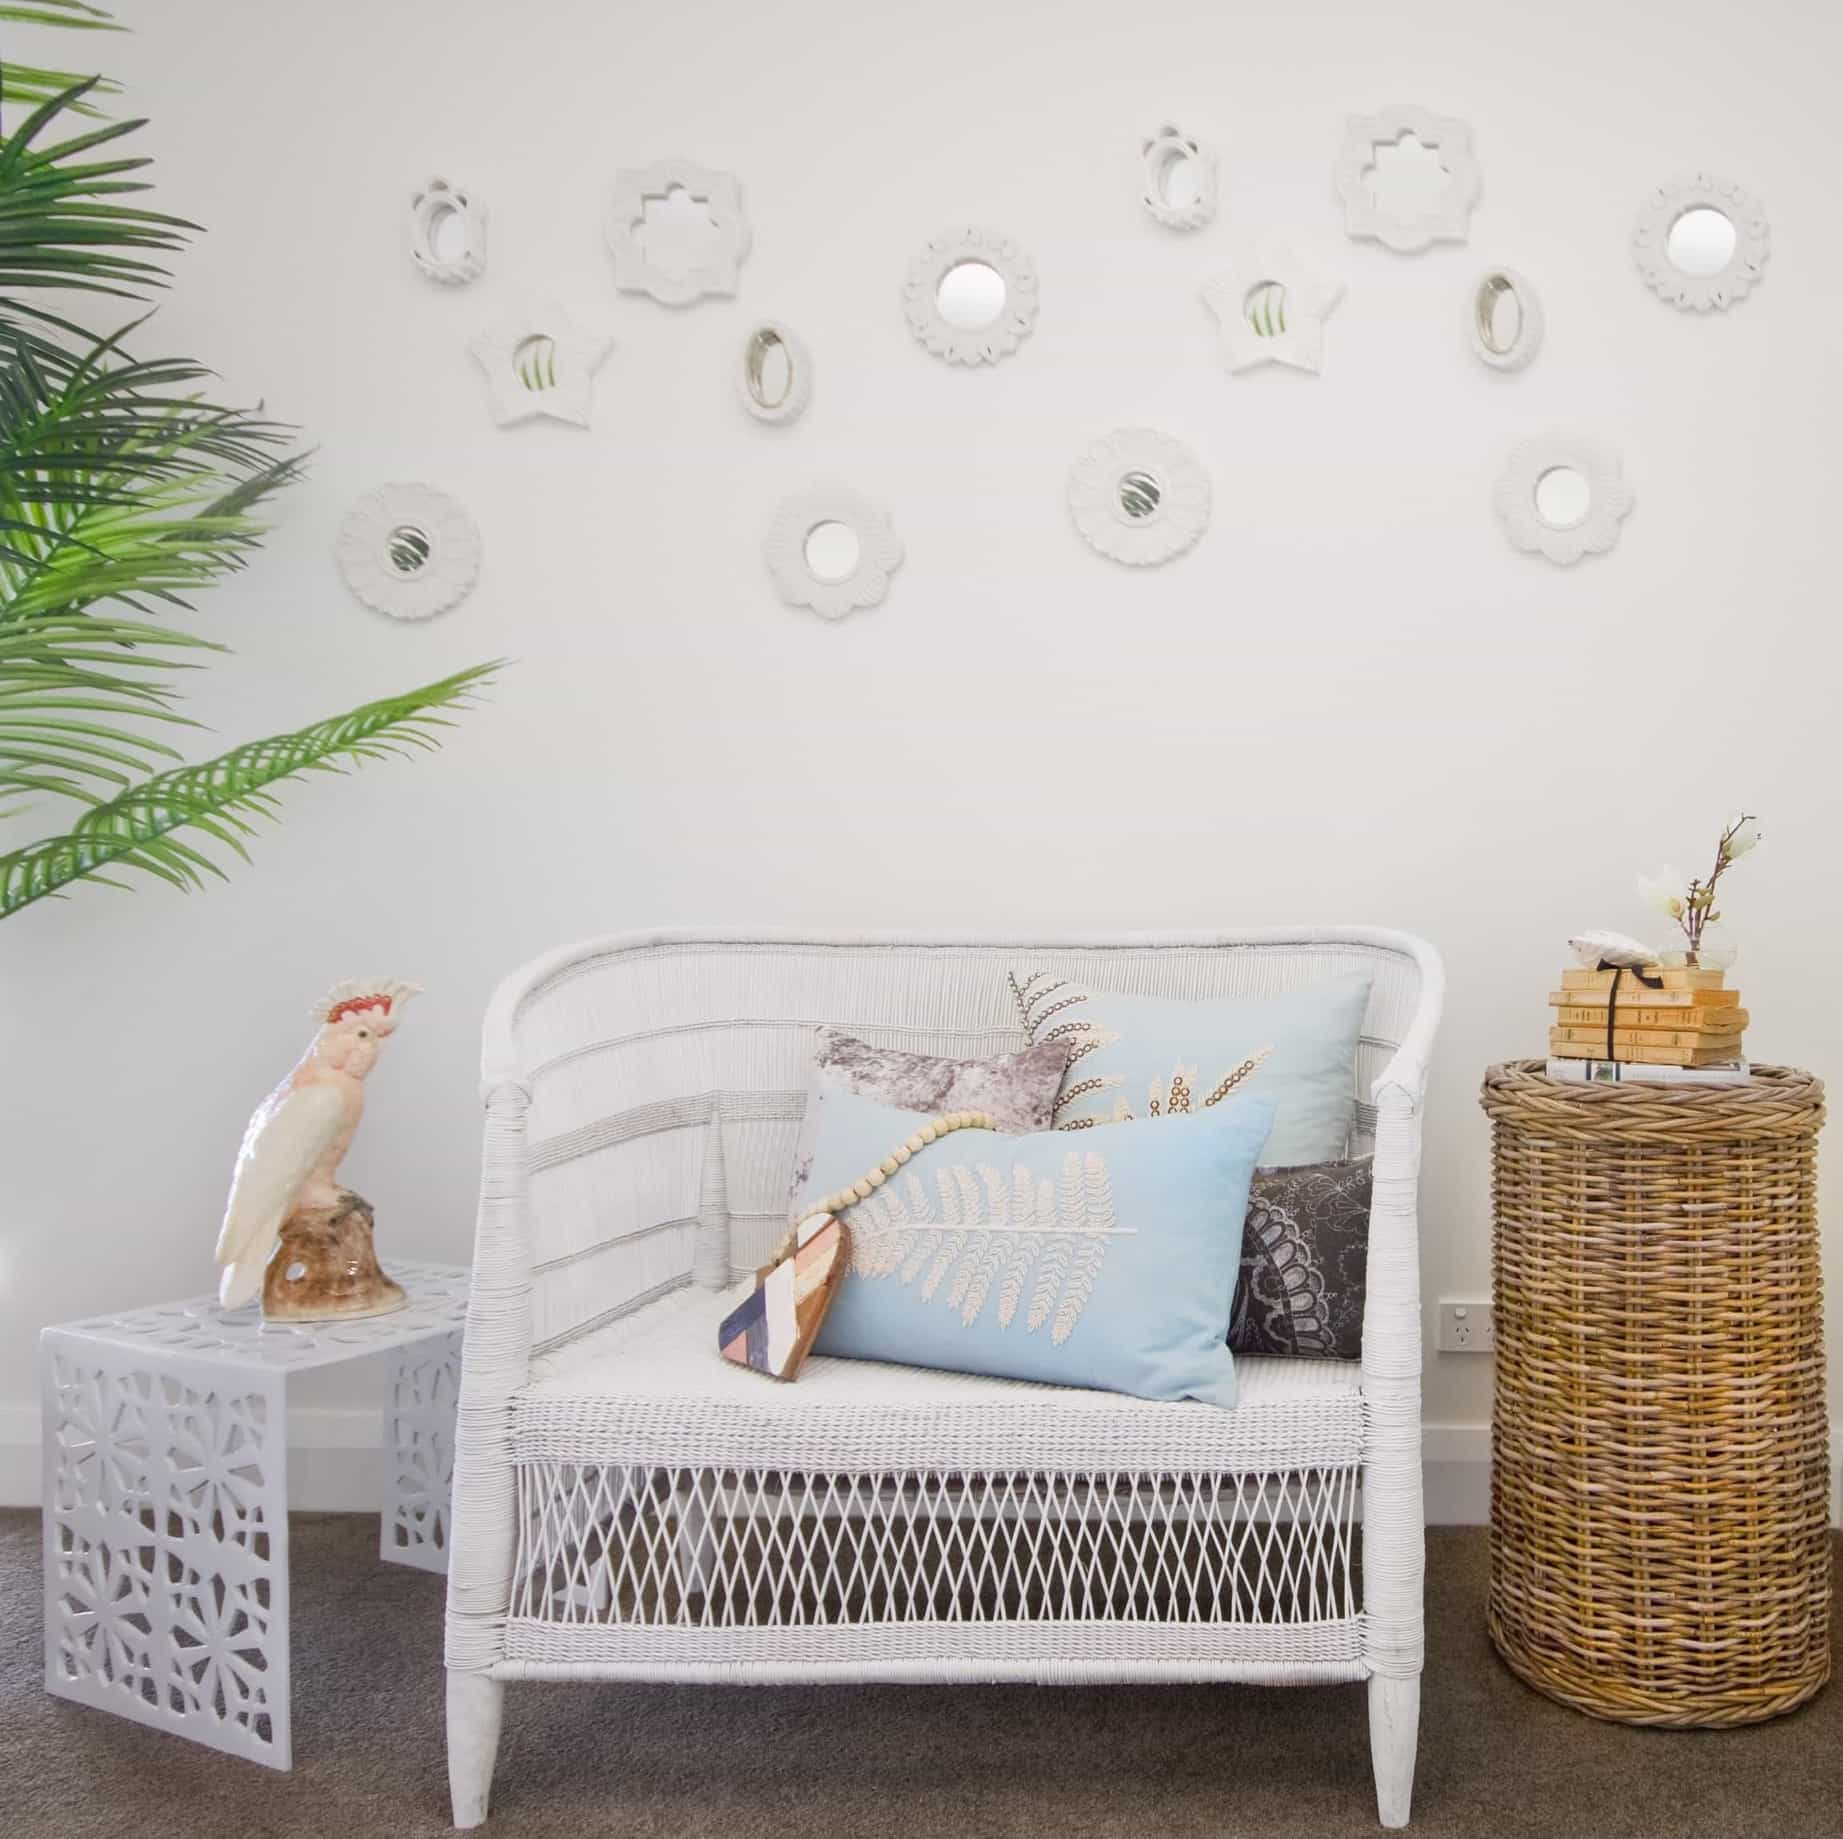 Featured Image of White Coastal Sitting Area With Wicker Chair